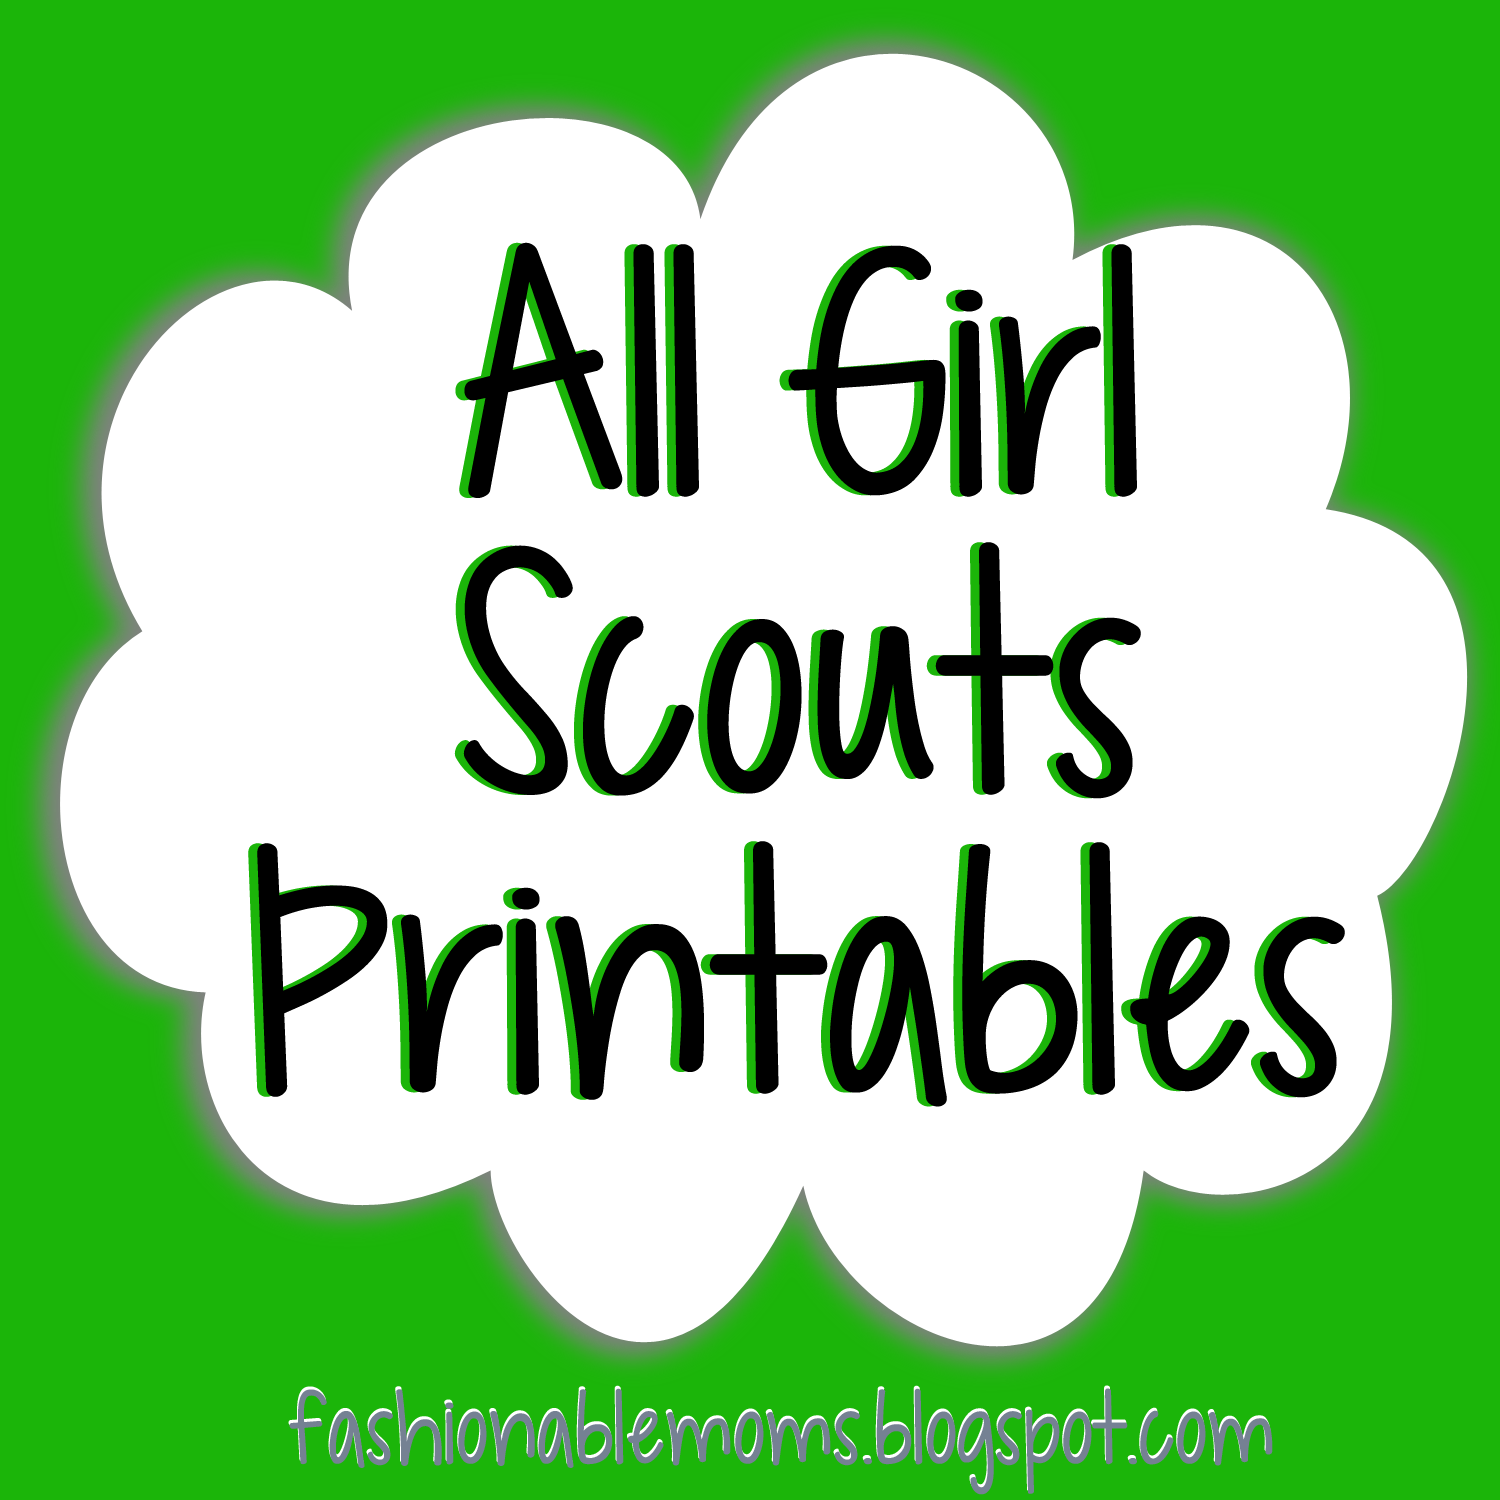 Fashionable Moms Girl Scouts Printables